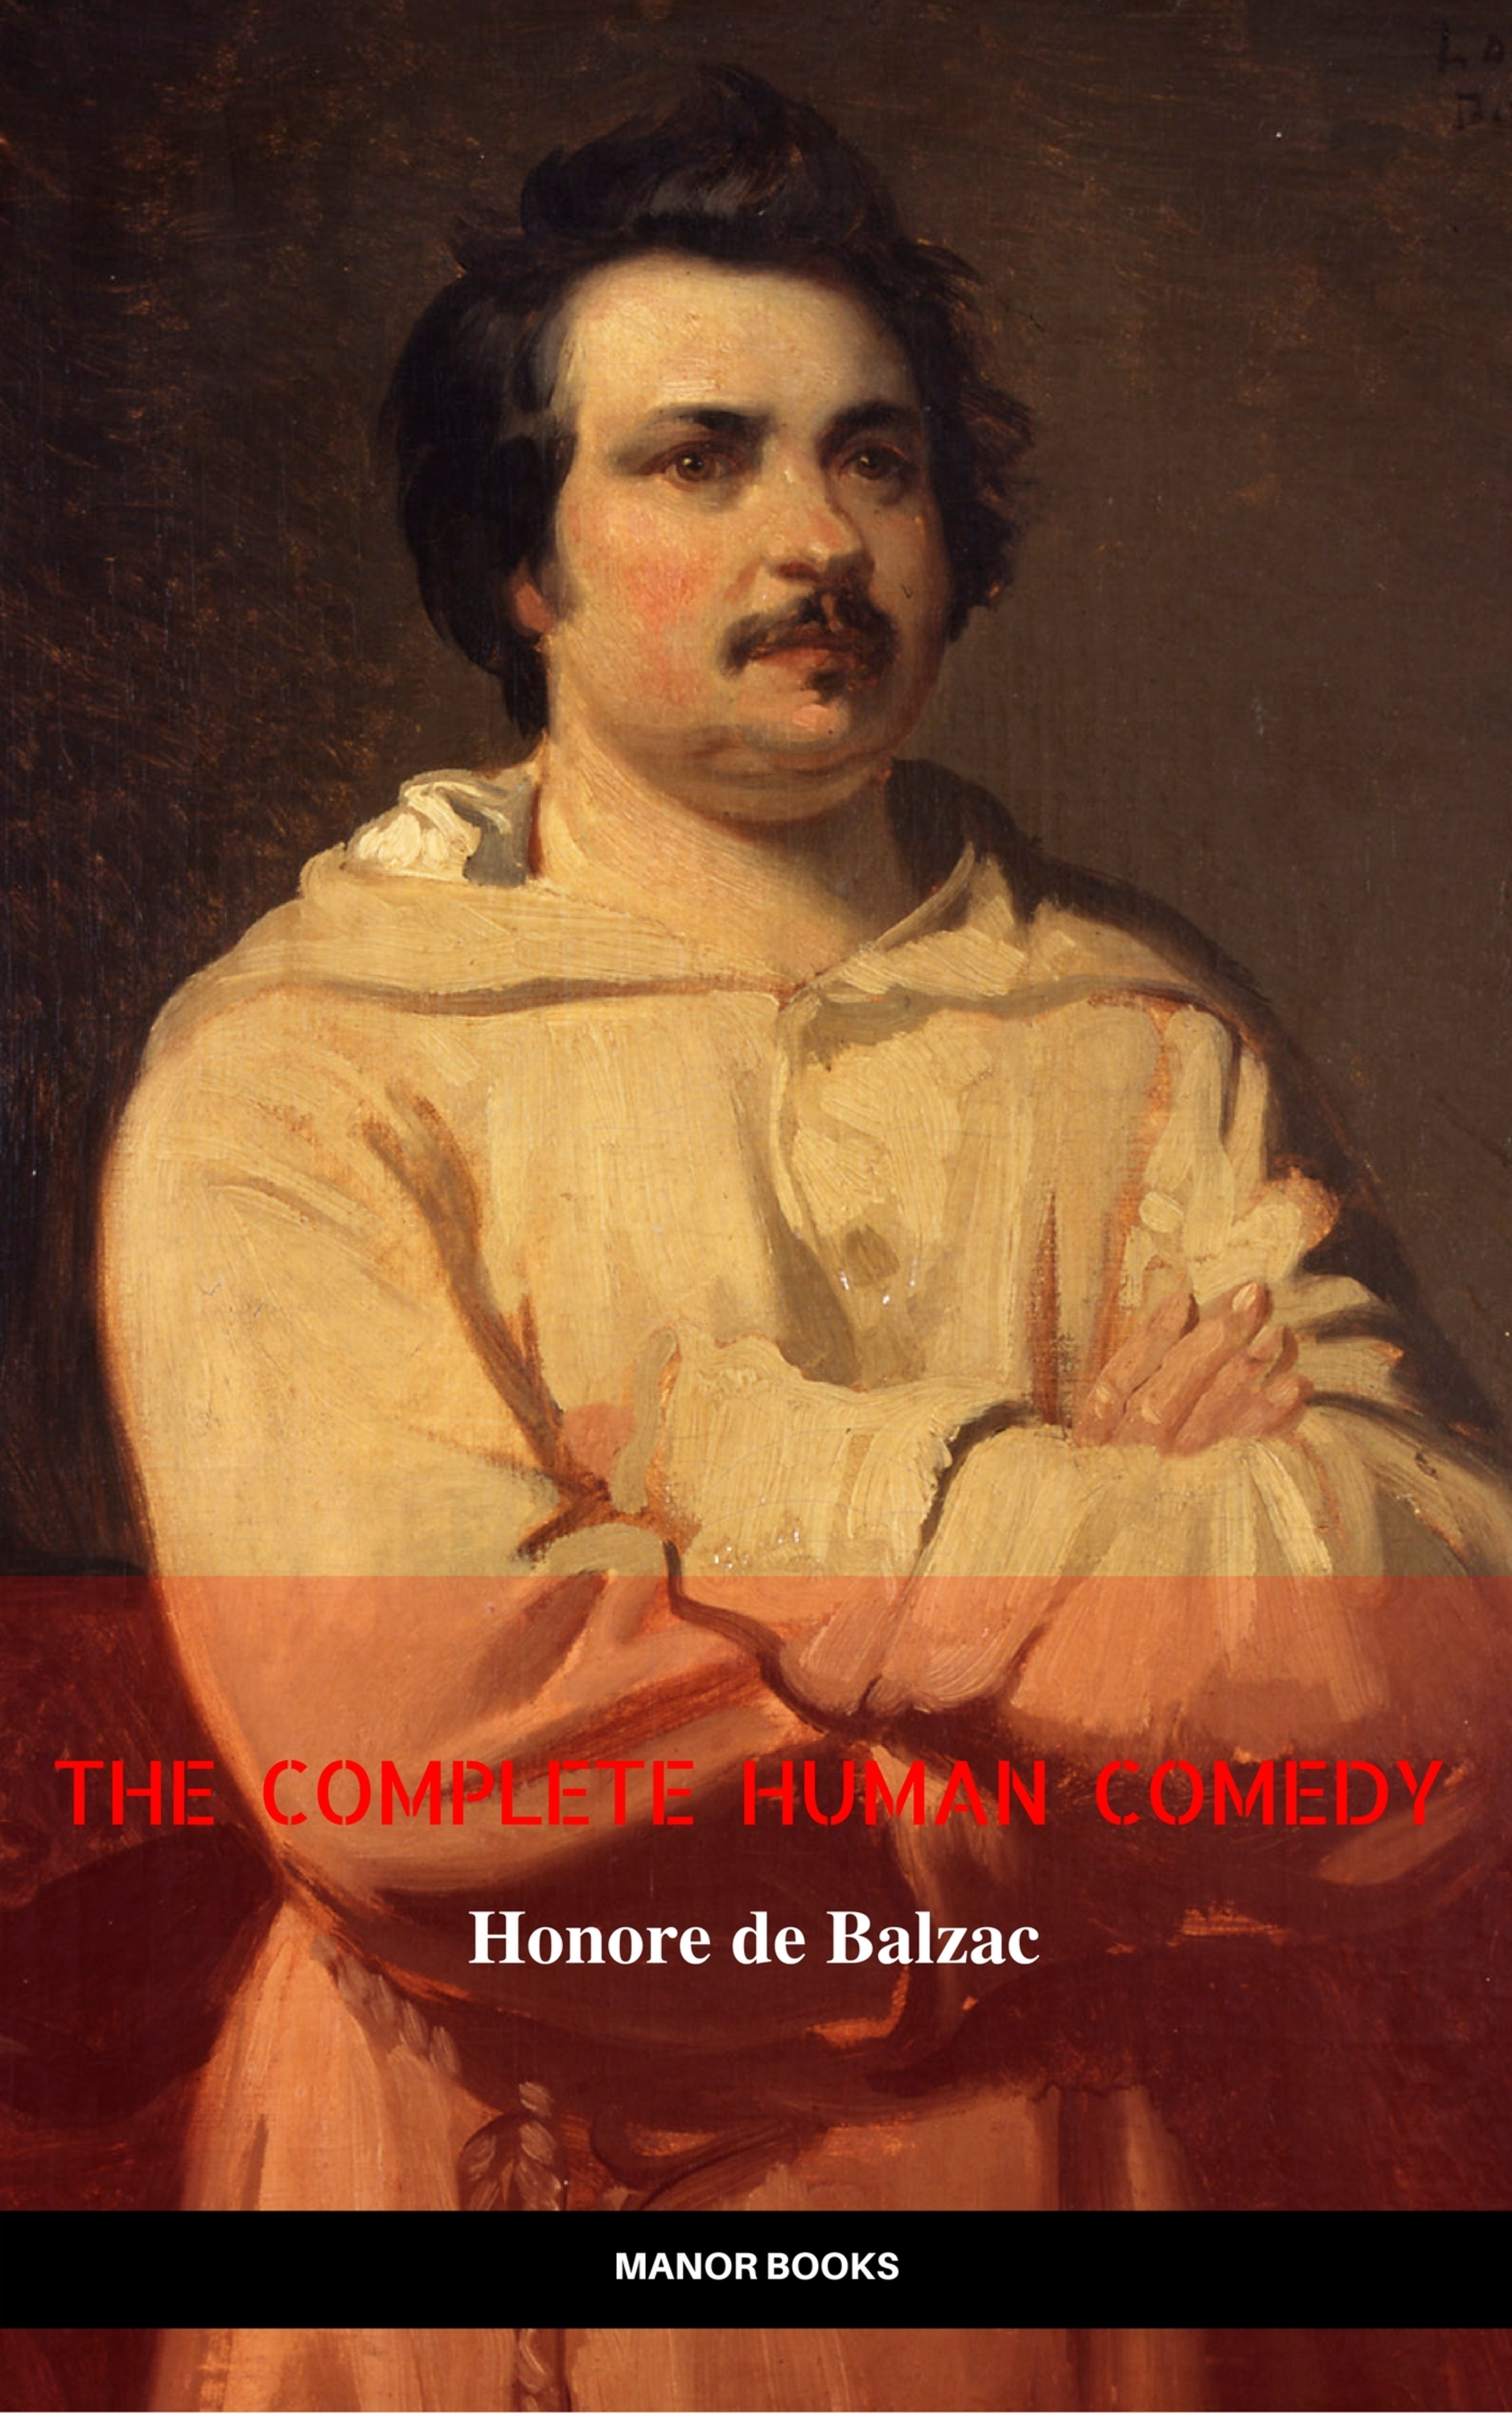 honore de balzac the complete human comedy cycle 100 works manor books the greatest writers of all time